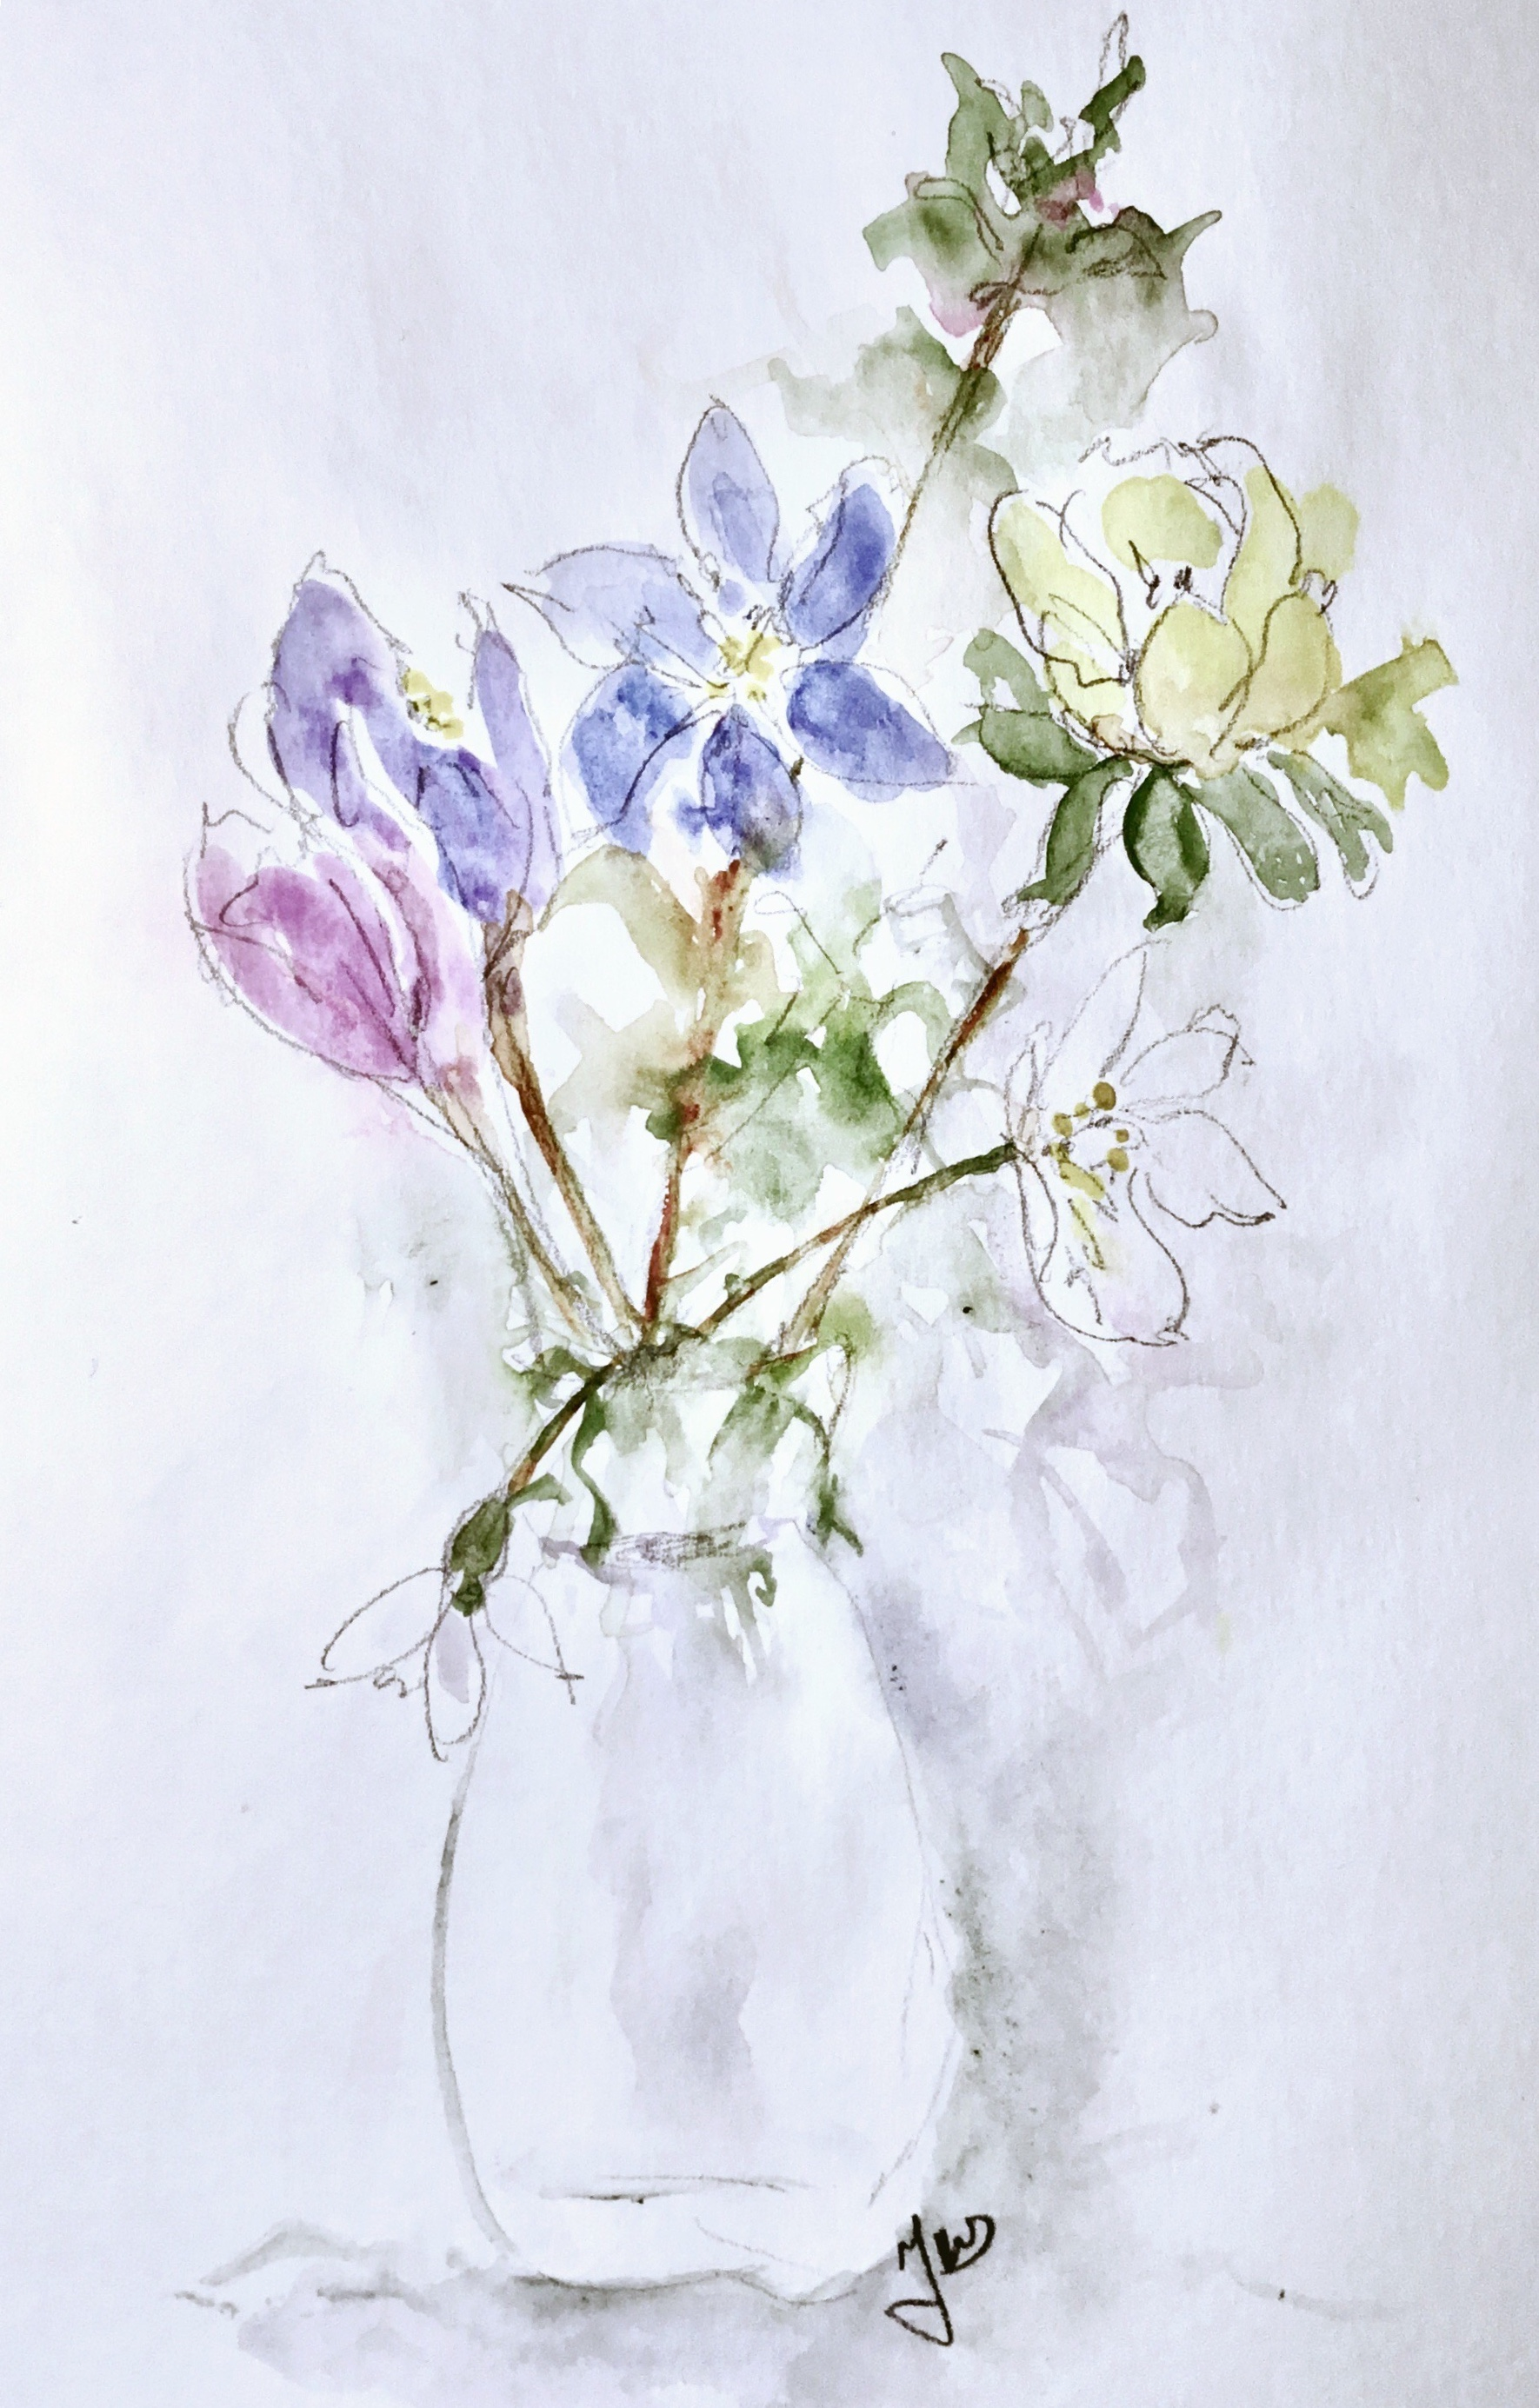 watercolorart from junerydgren.se